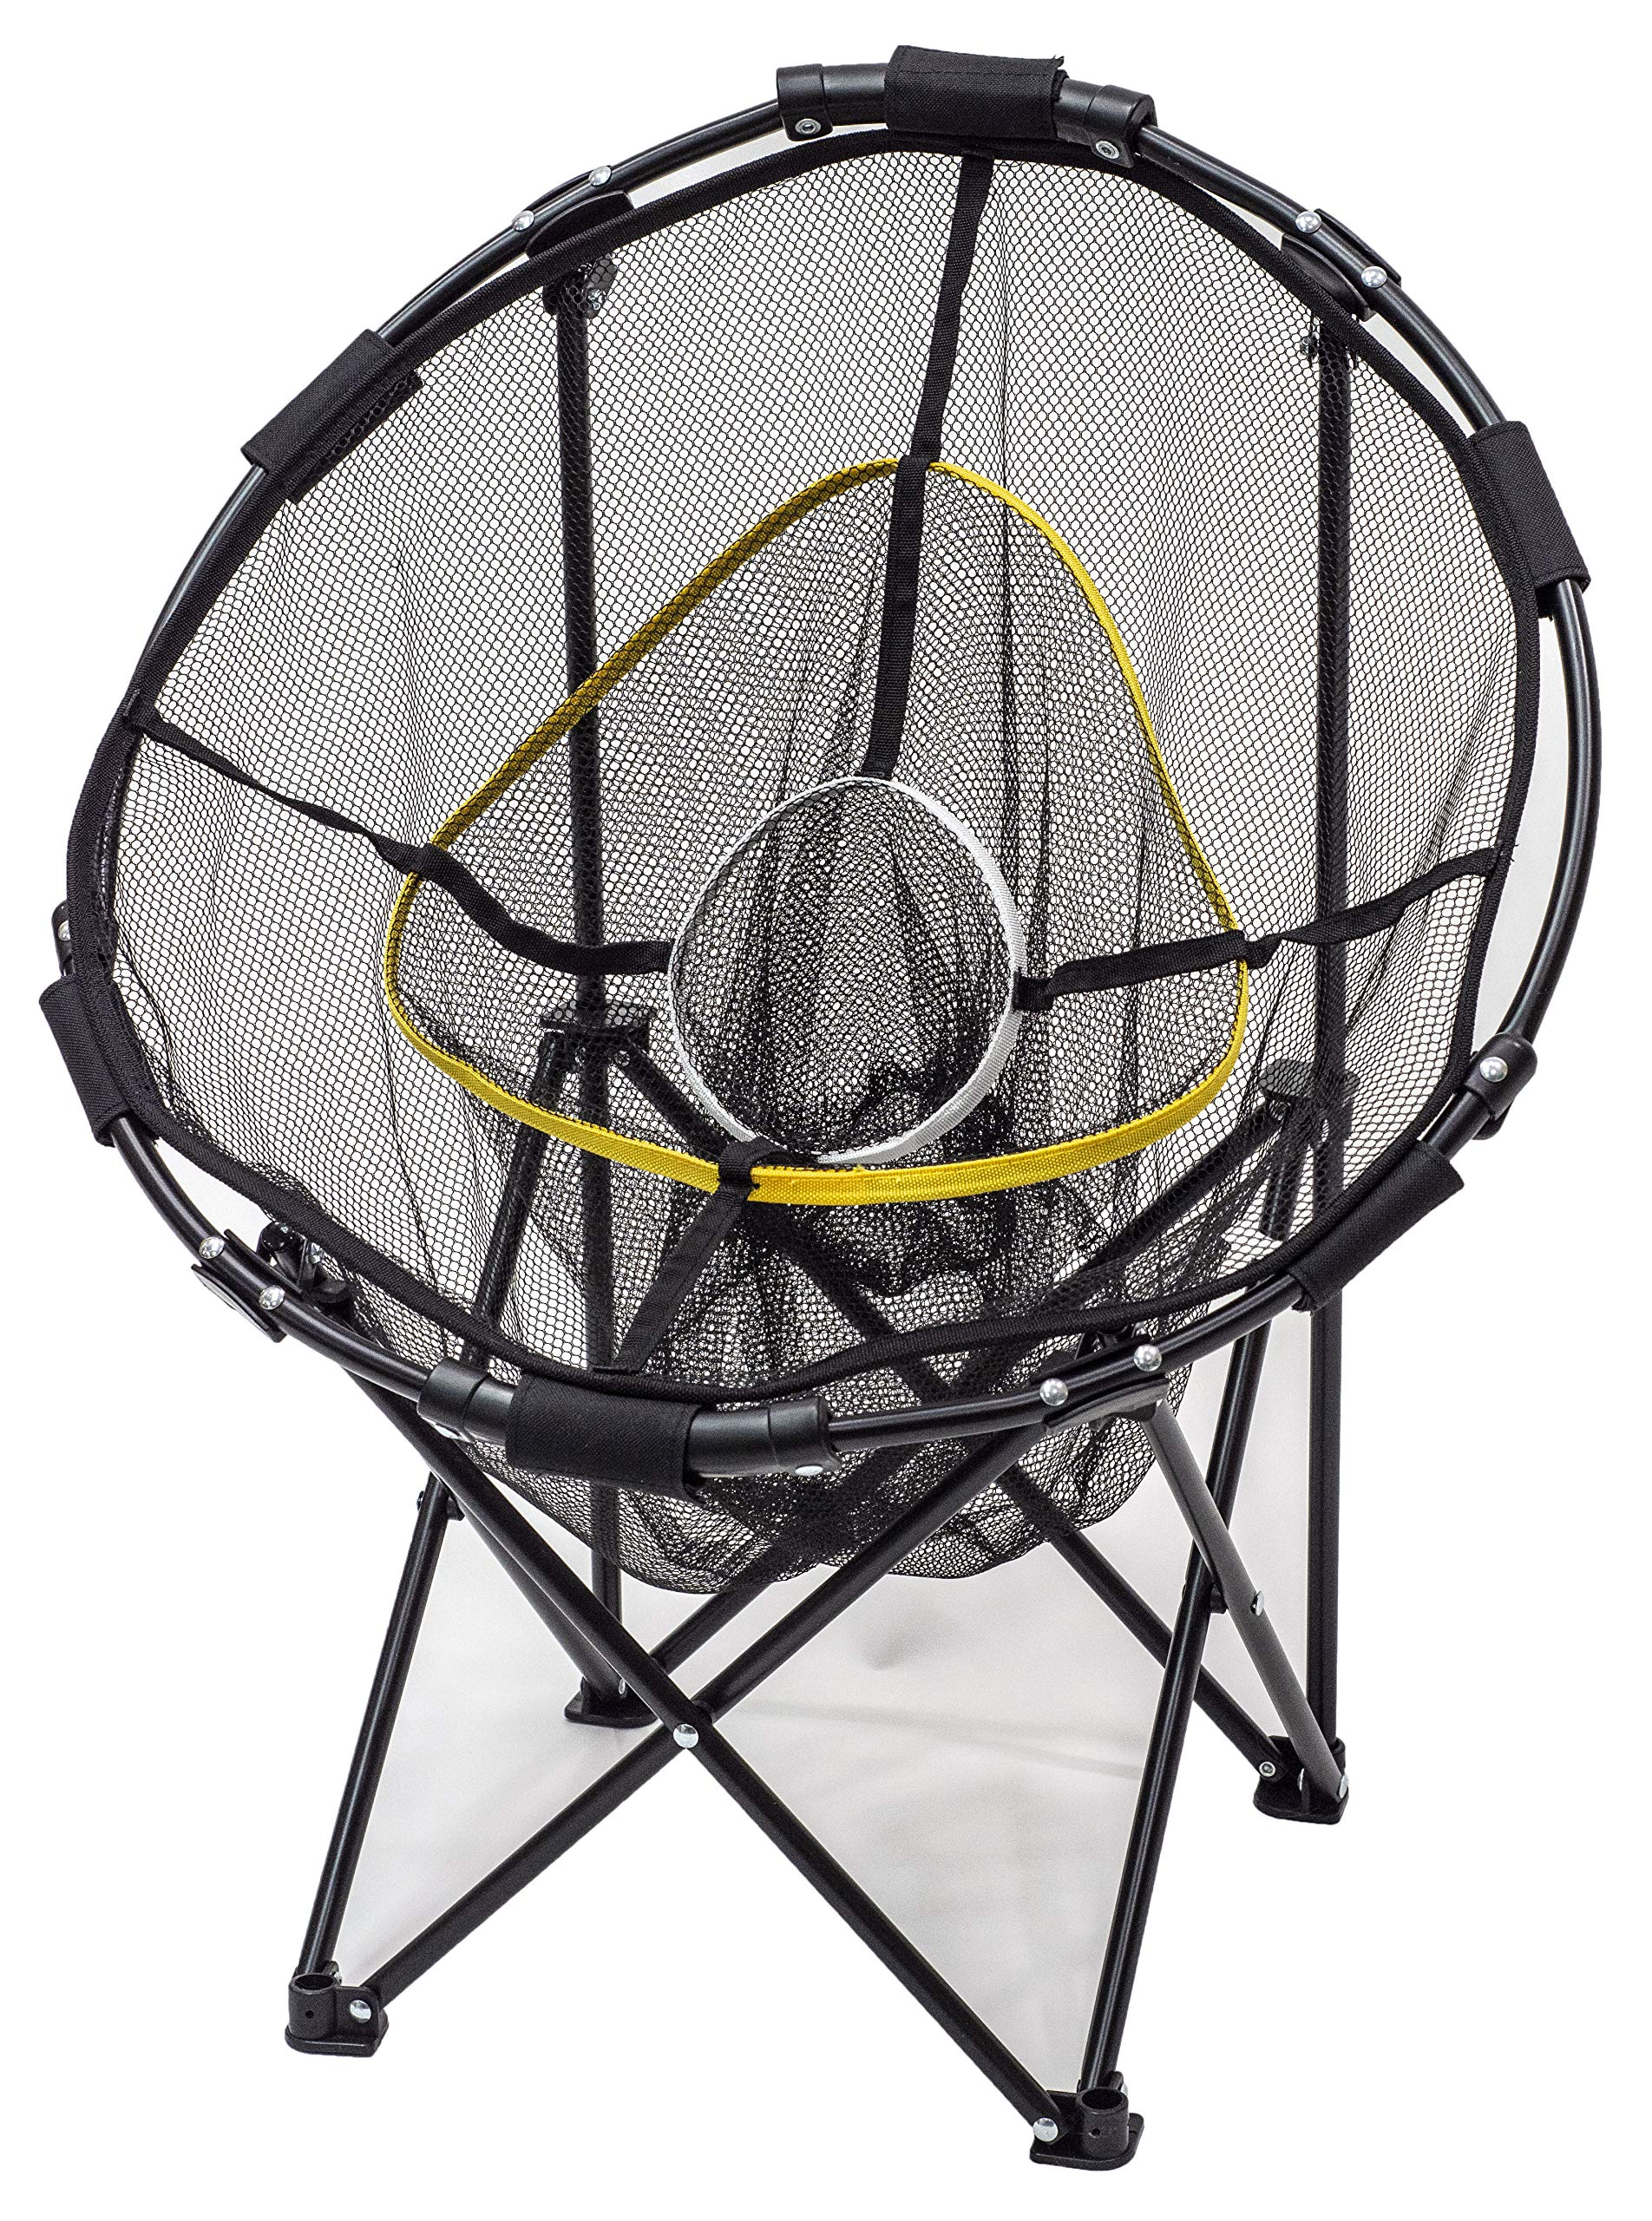 JEF World of Golf Collapsible Chipping Net by JEF WORLD OF GOLF